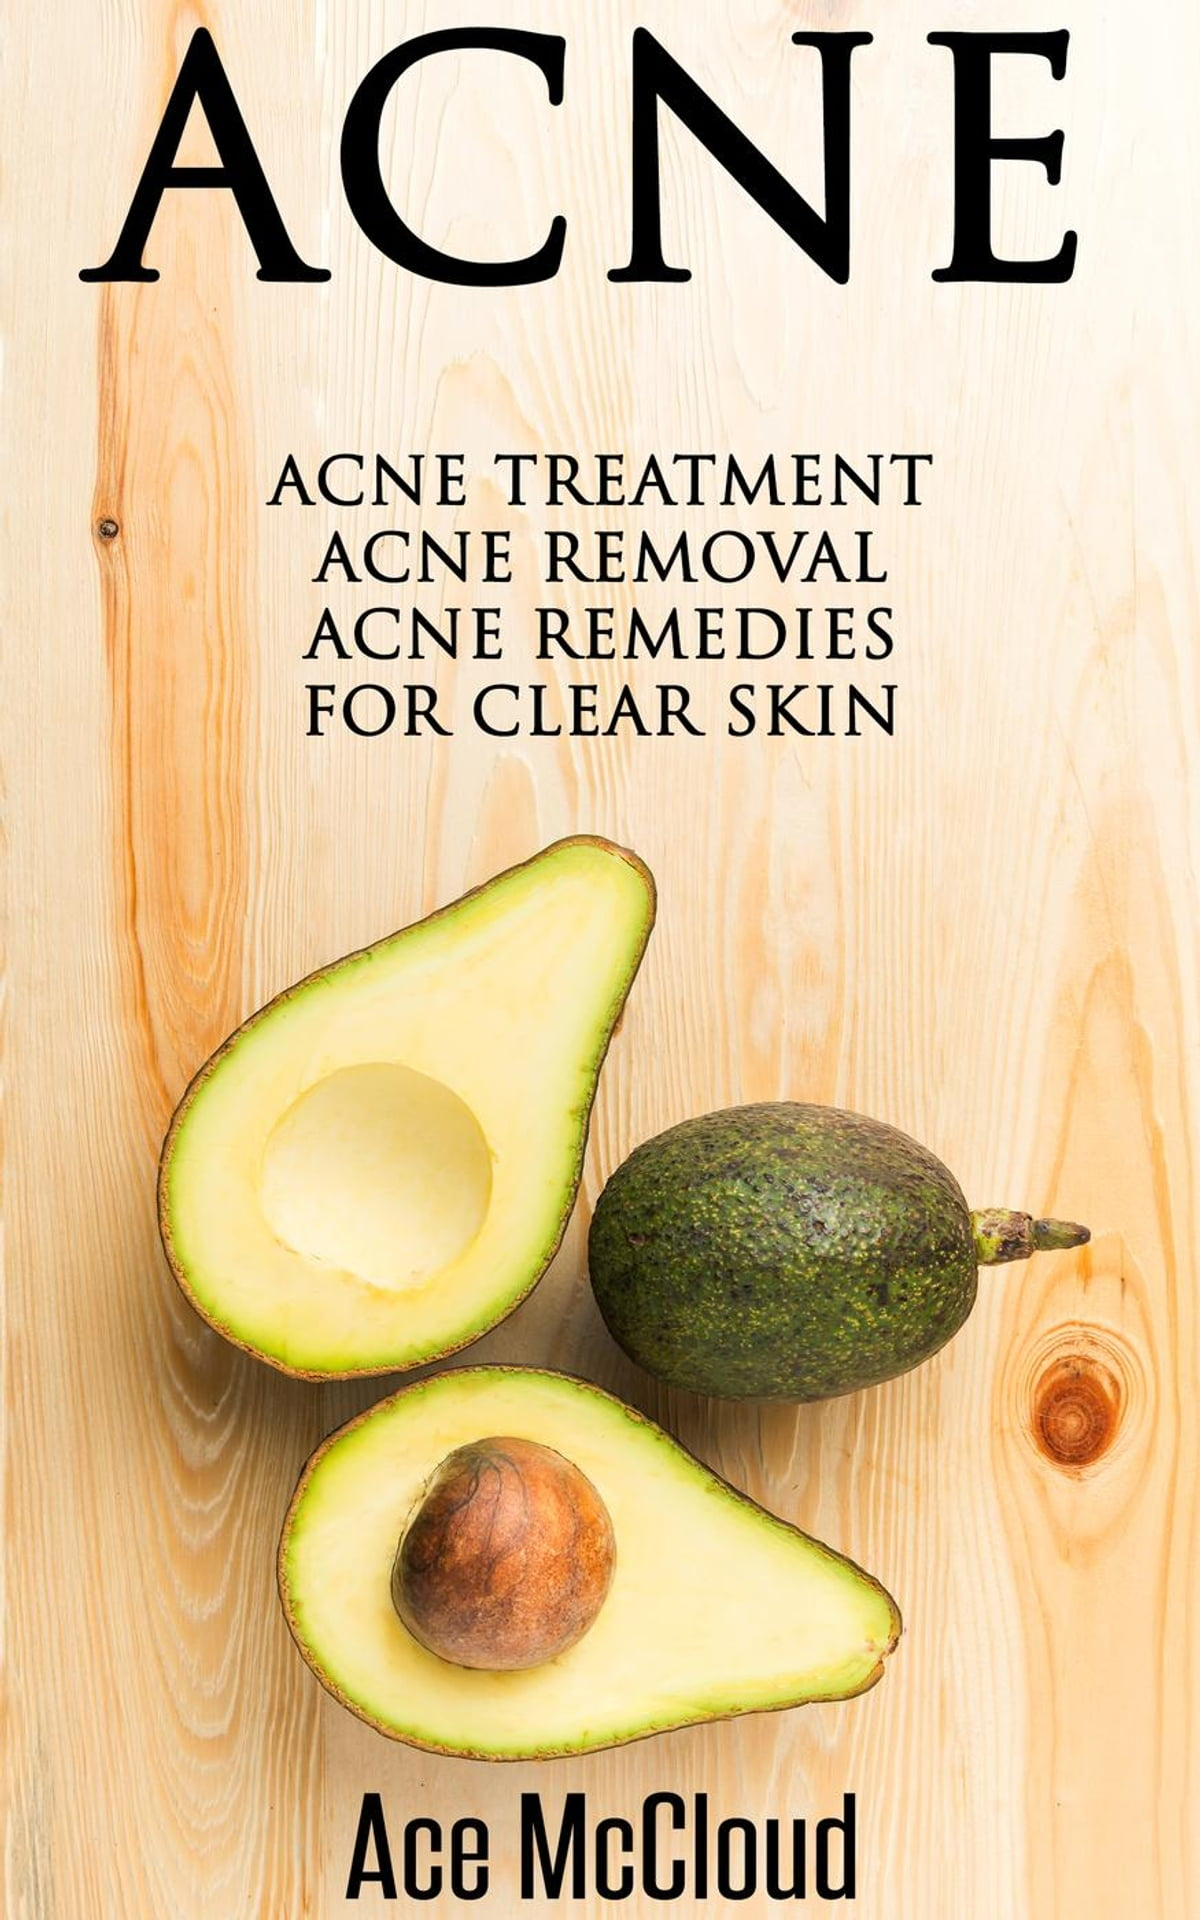 Acne: Acne Treatment: Acne Removal: Acne Remedies For Clear Skin eBook by Ace McCloud - 9781386937876 - Rakuten Kobo Acne: Acne Treatment: Acne Removal: Acne Remedies For Clear Skin ebook by Ace McCloud - Rakuten Kobo - 웹